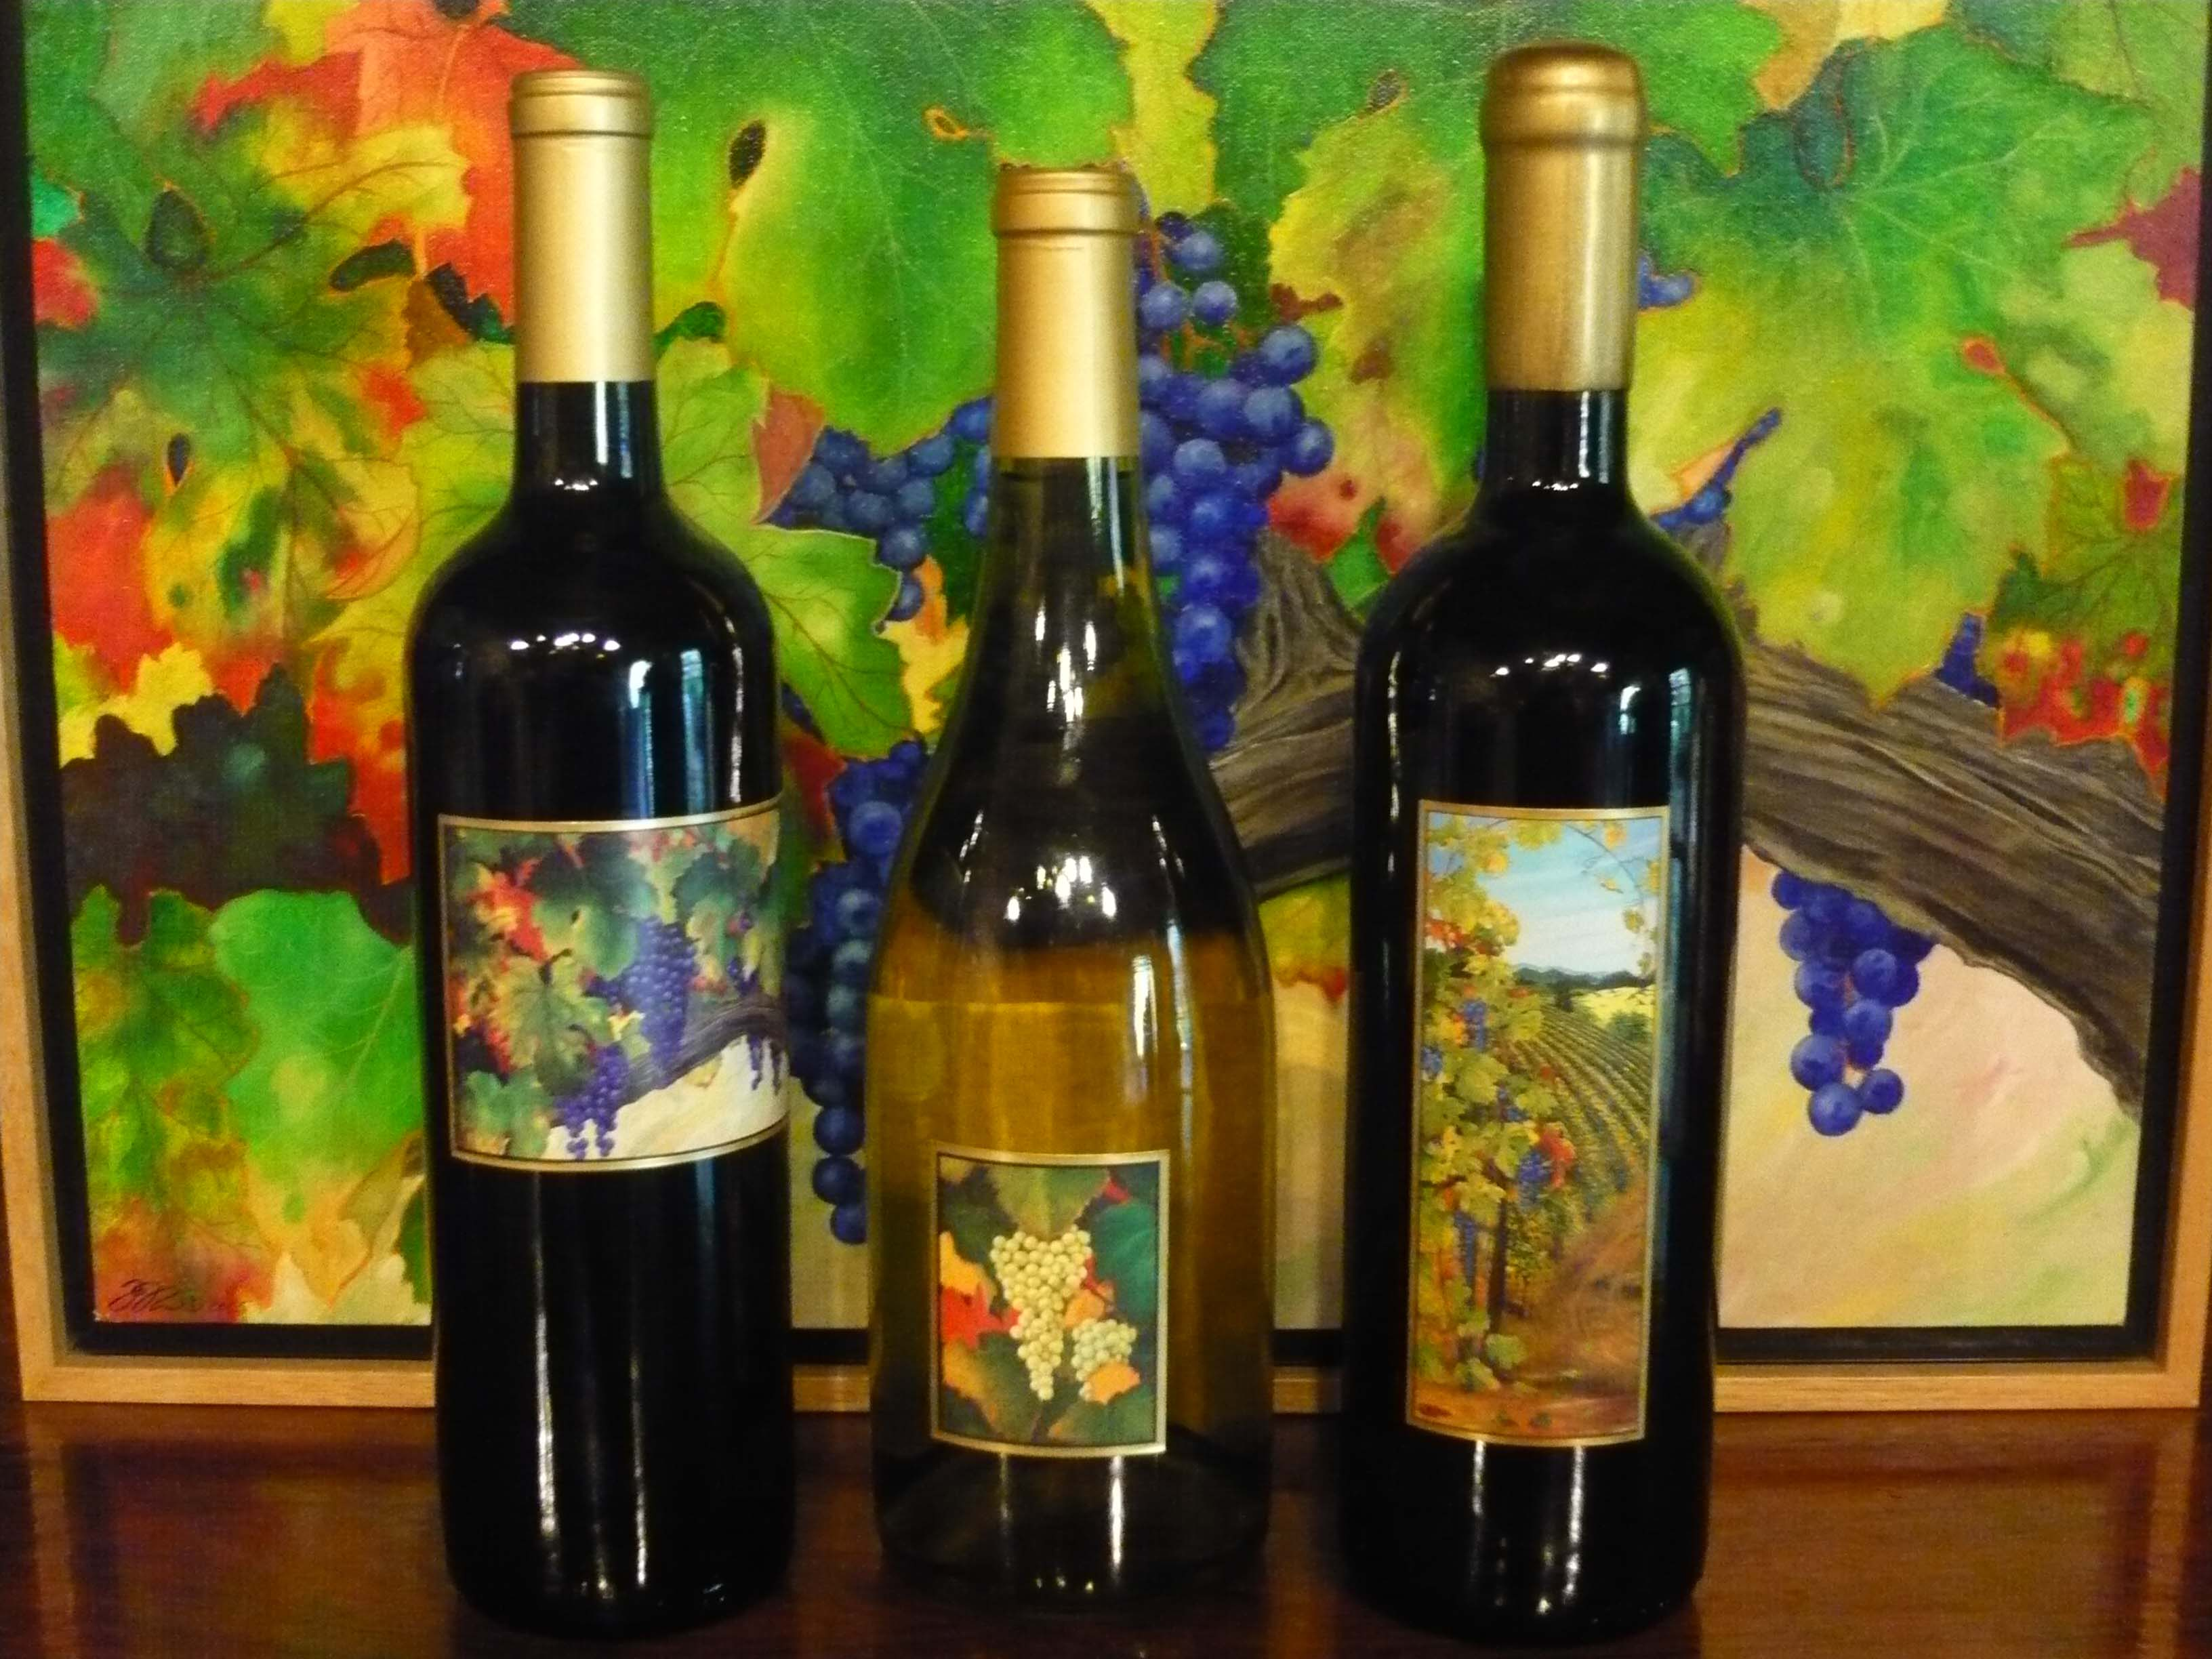 Artevino Wine Cellar Red Wine Handcrafted Artfully Made Wines